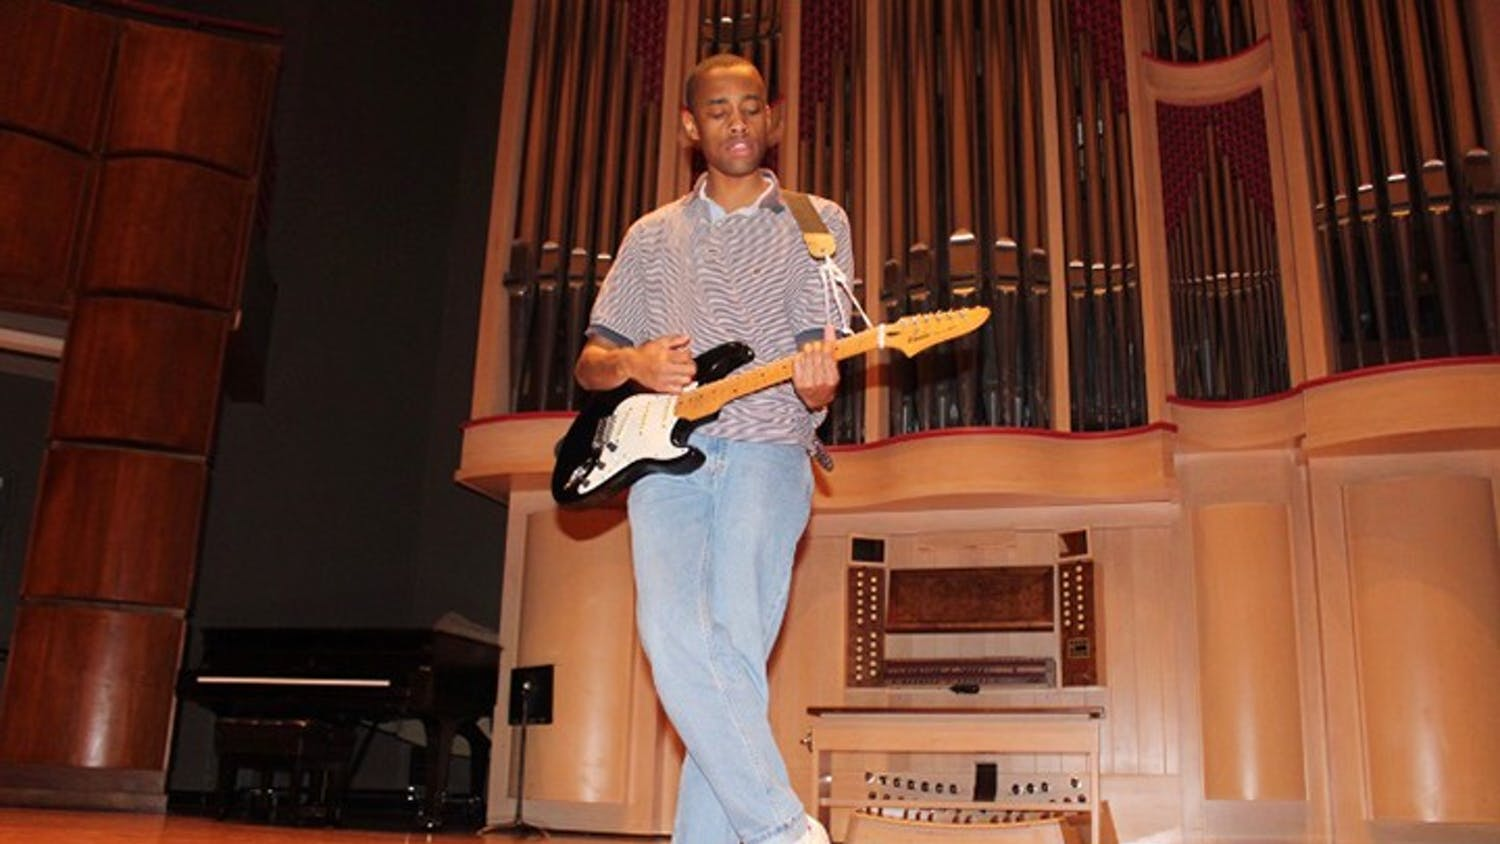 Sanchez Goodjoin performs at the Koger Center for the Arts. Goodjoin is known for his exciting stage presence.